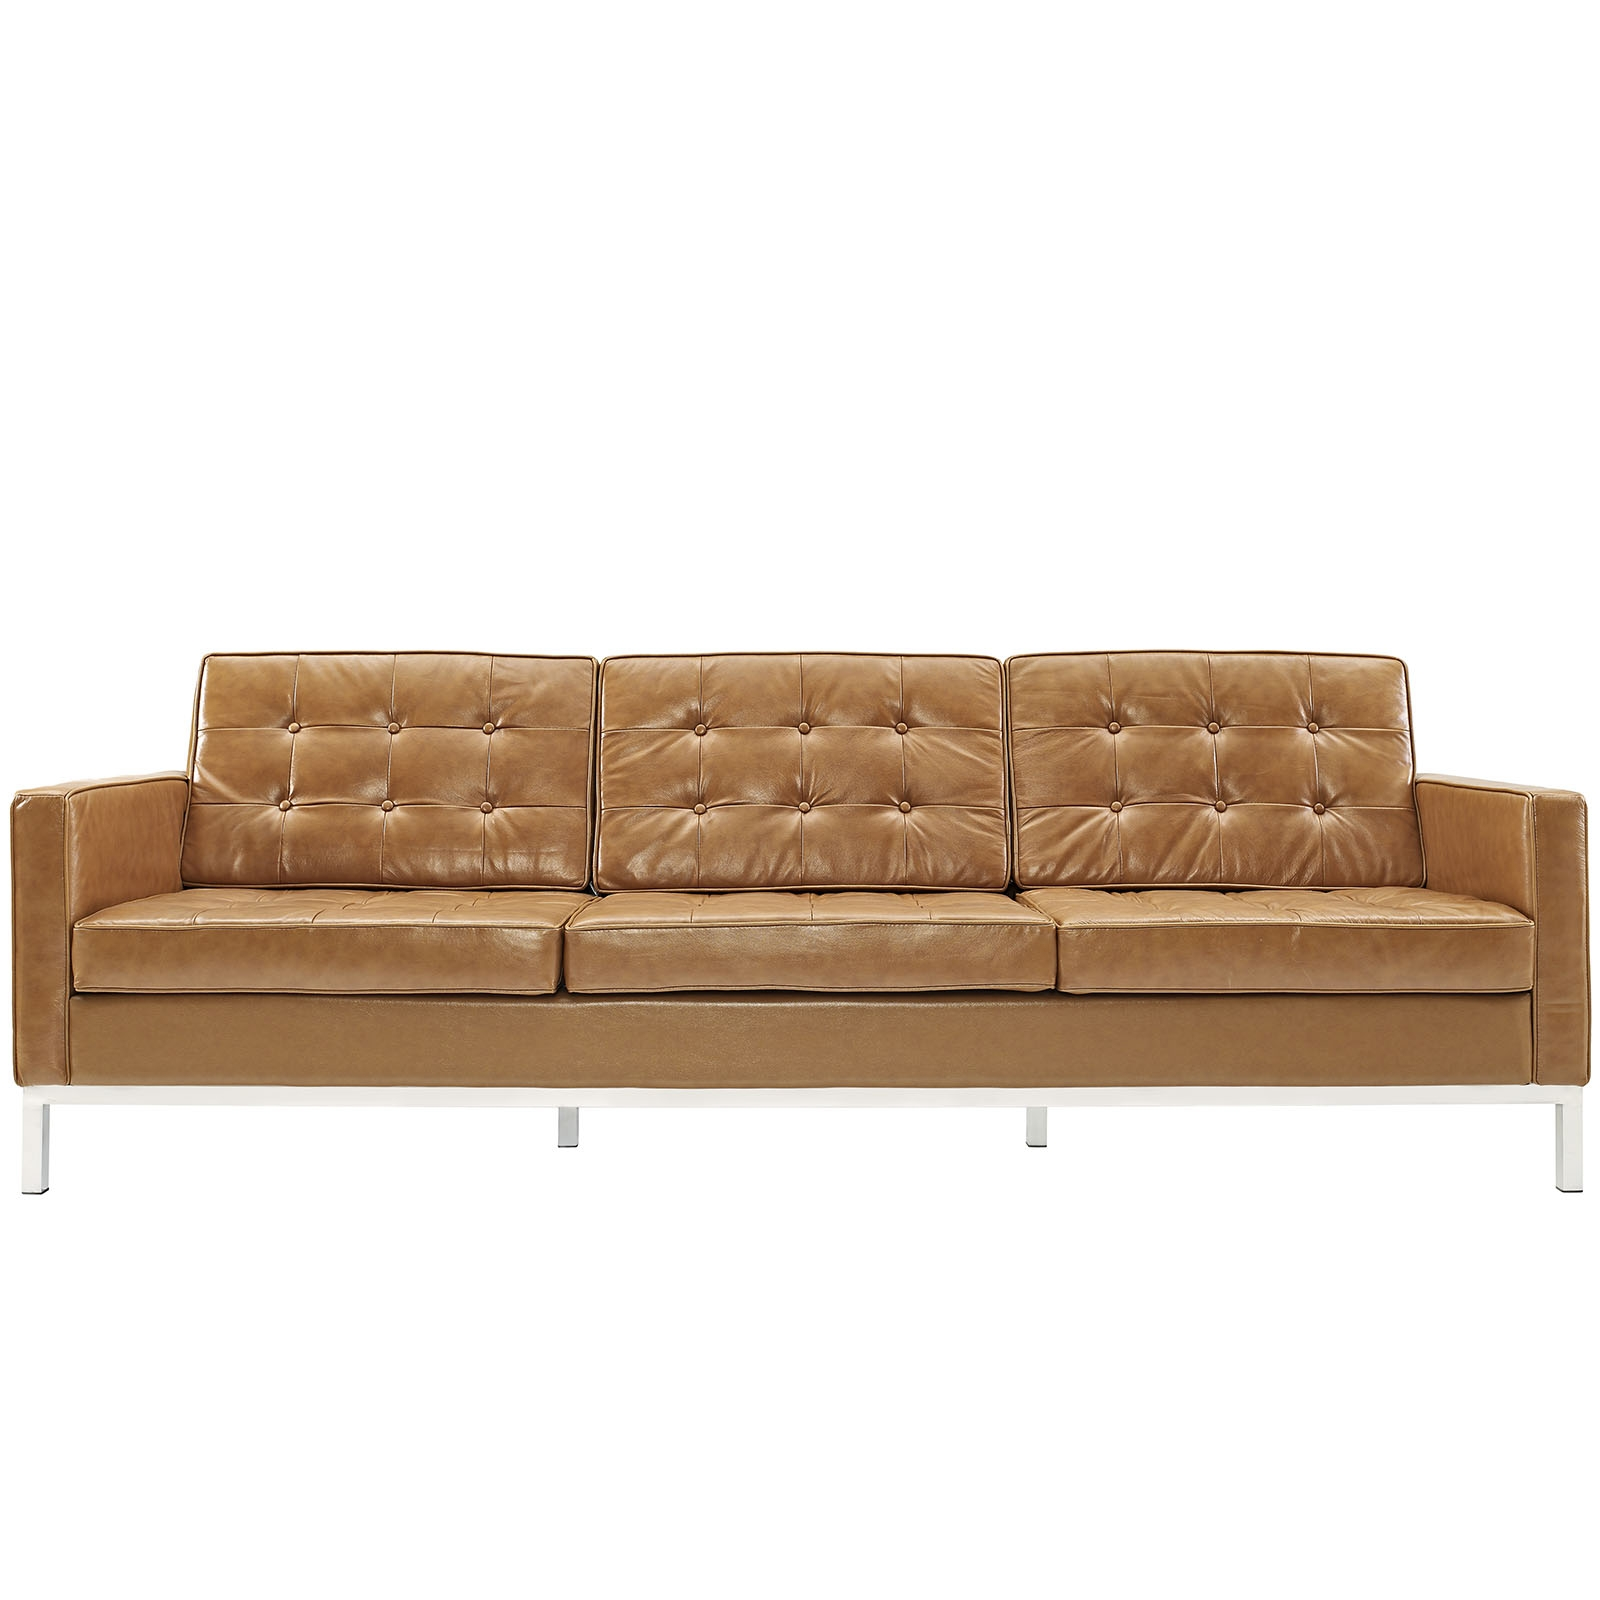 Florence Knoll Style Sofa Couch Leather For Florence Knoll Leather Sofas (Image 6 of 15)